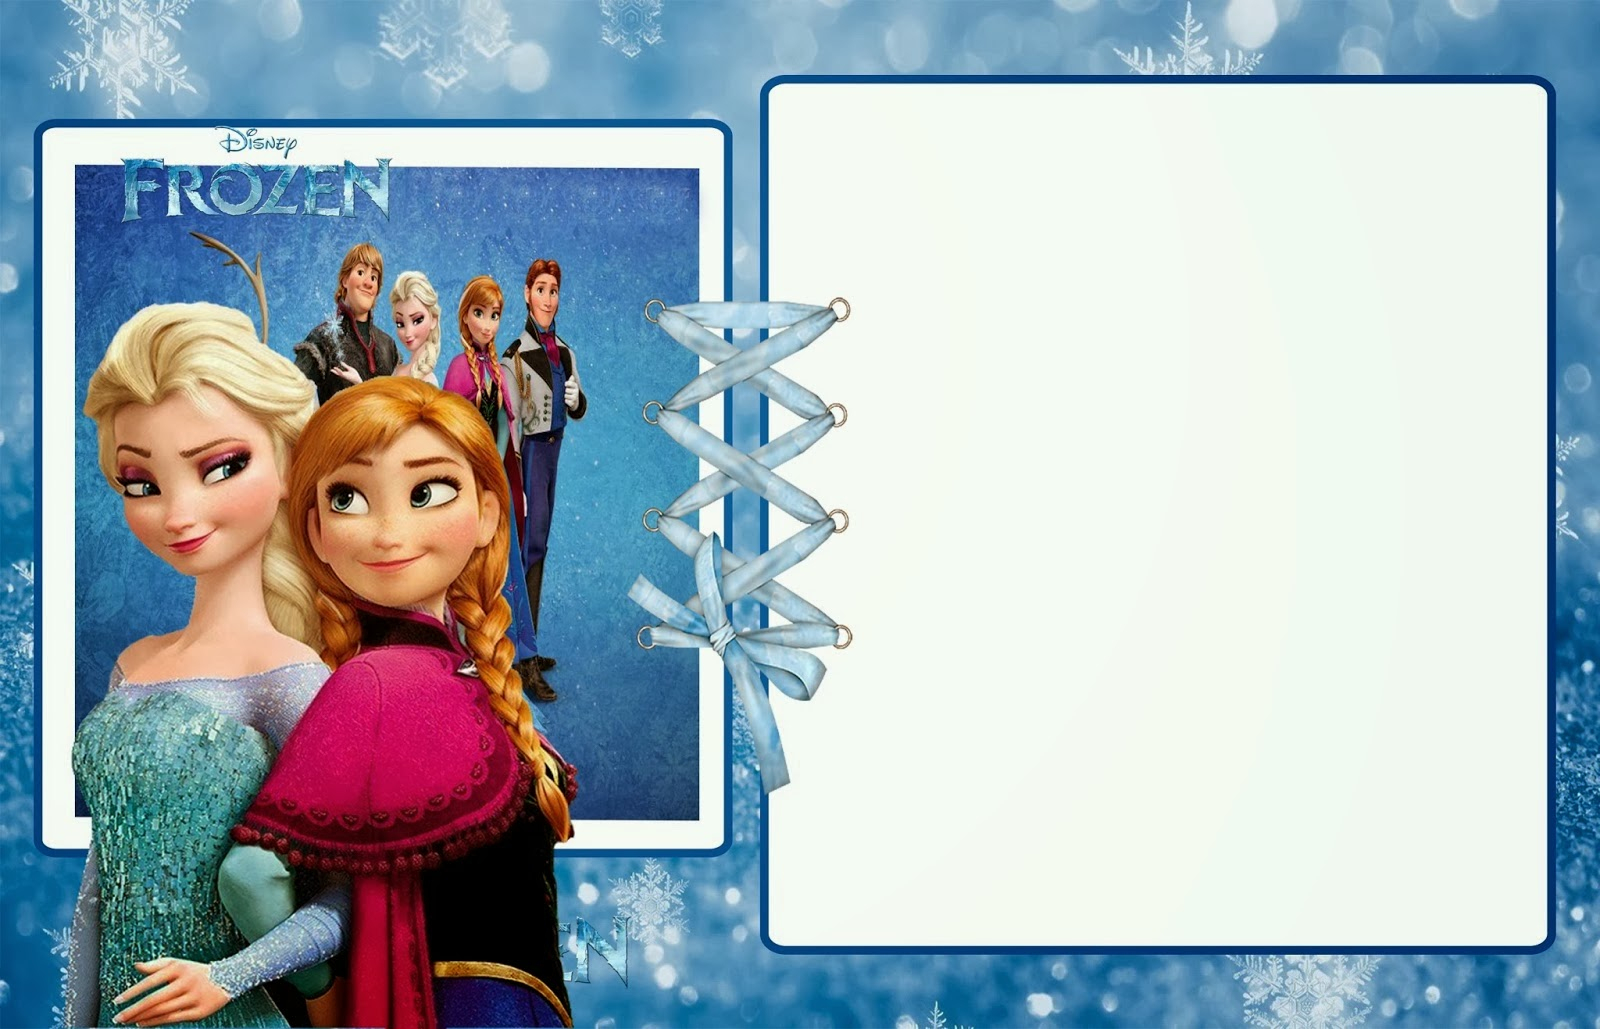 photo regarding Free Printable Frozen Invites named Frozen Get together: Cost-free Printable Invites. Oh My Fiesta! In just